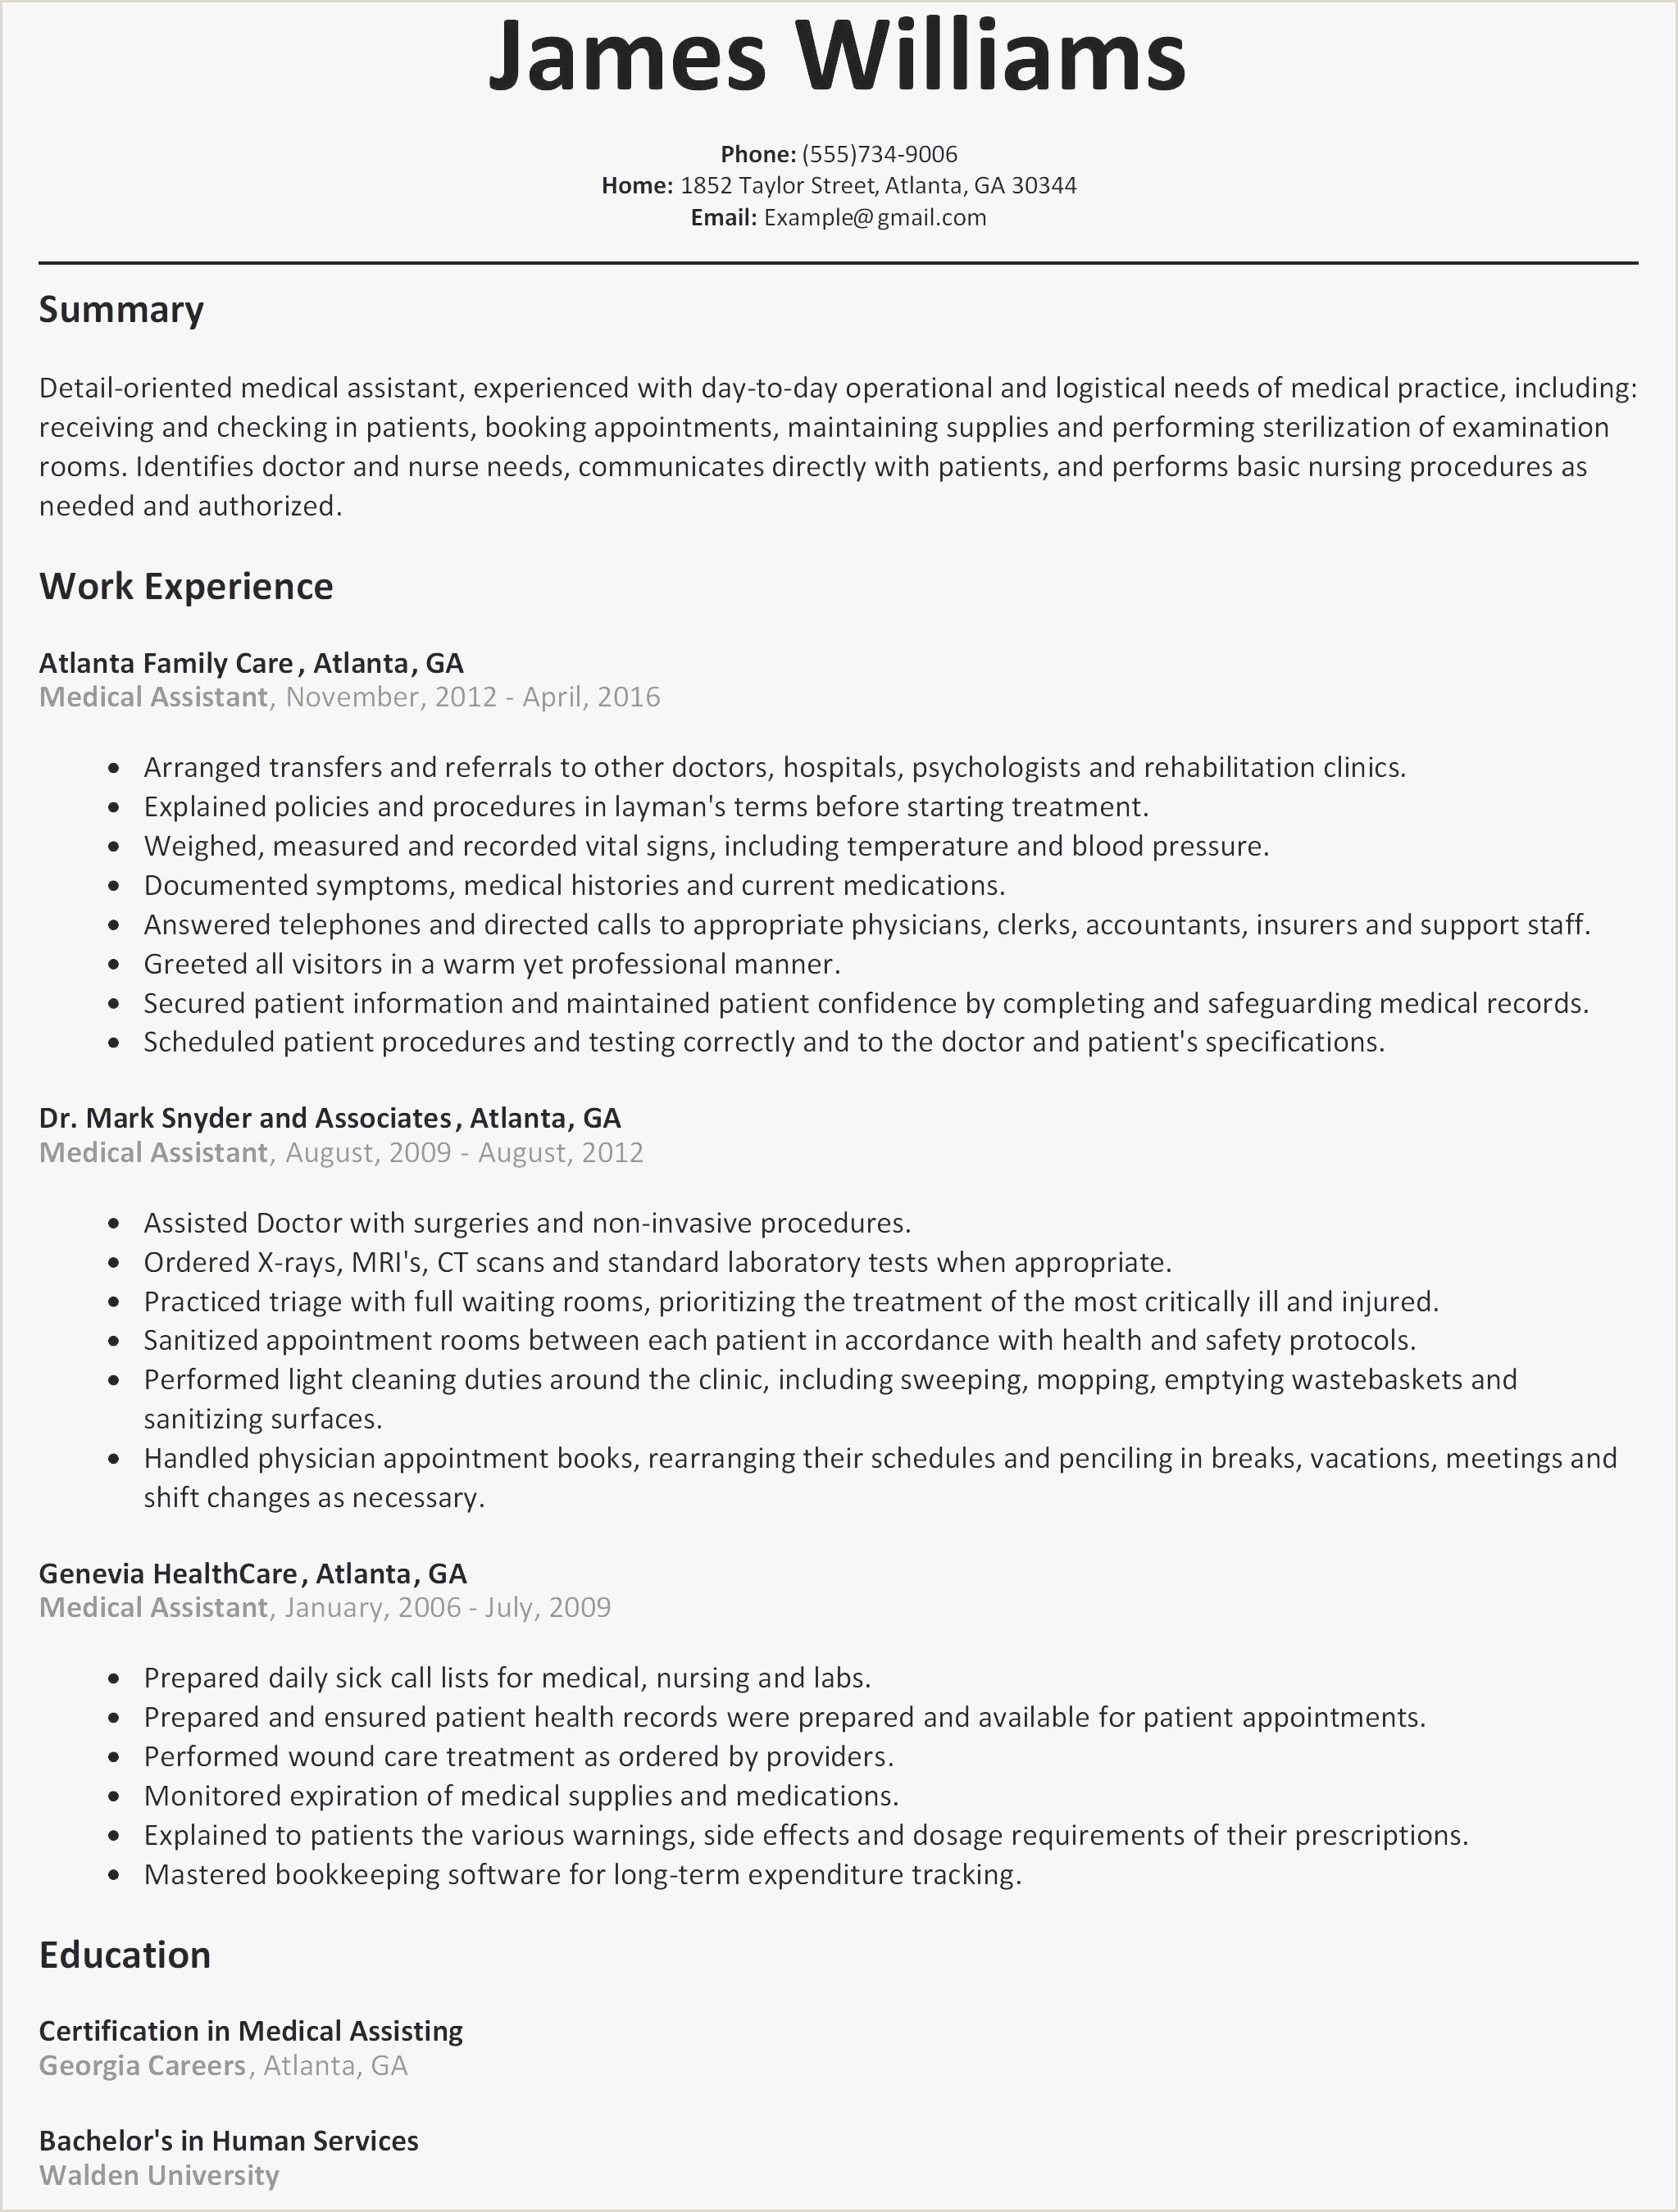 Modern Cv Example Free 69 Modern Resume Templates Word